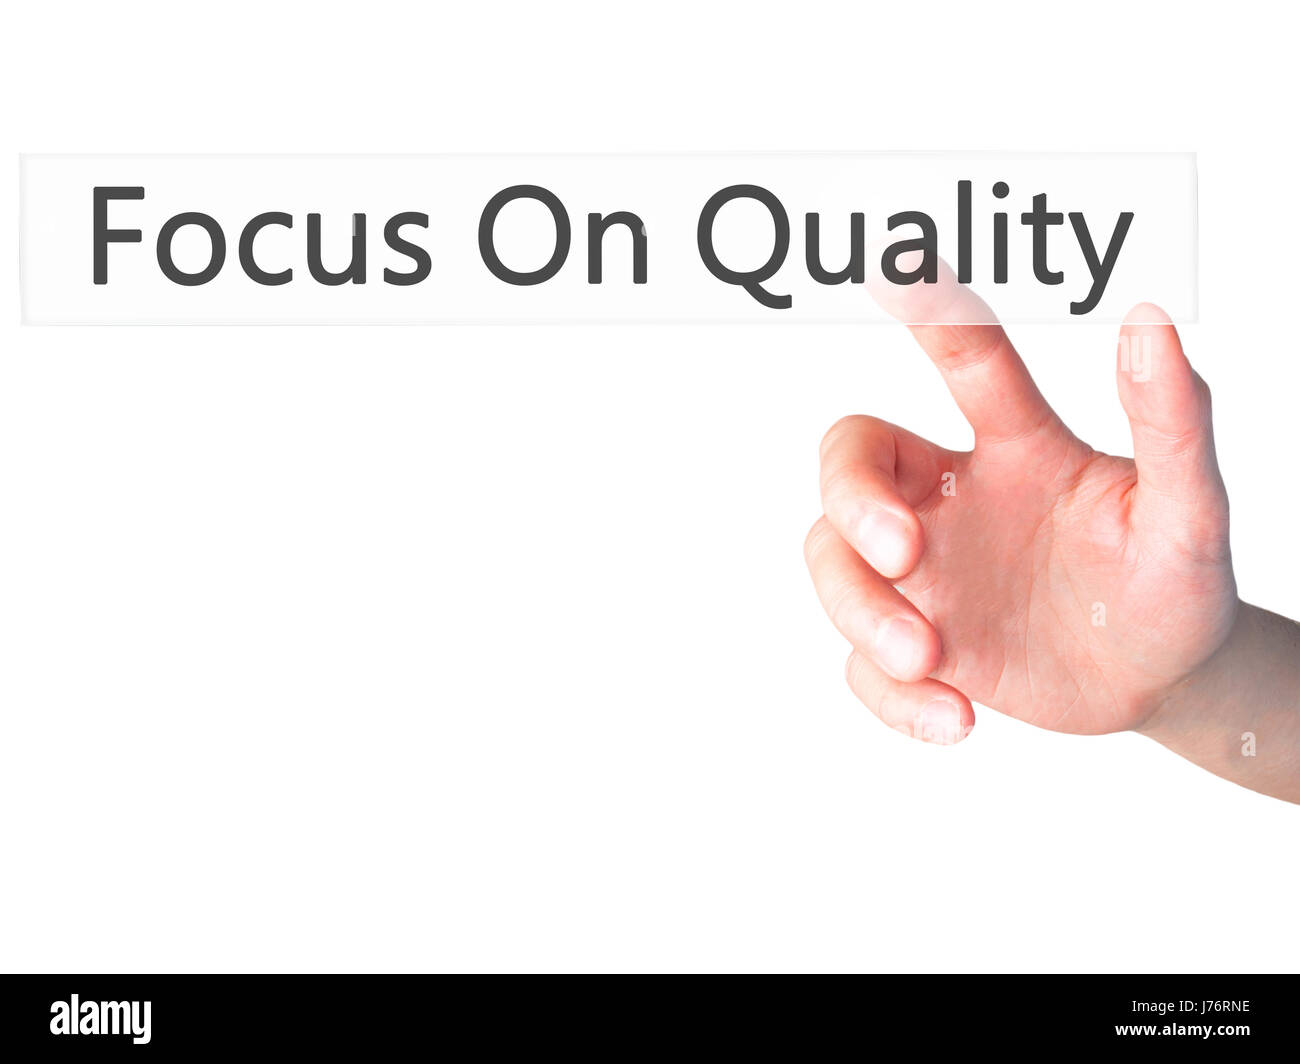 Focus On Quality - Hand pressing a button on blurred background concept . Business, technology, internet concept. - Stock Image